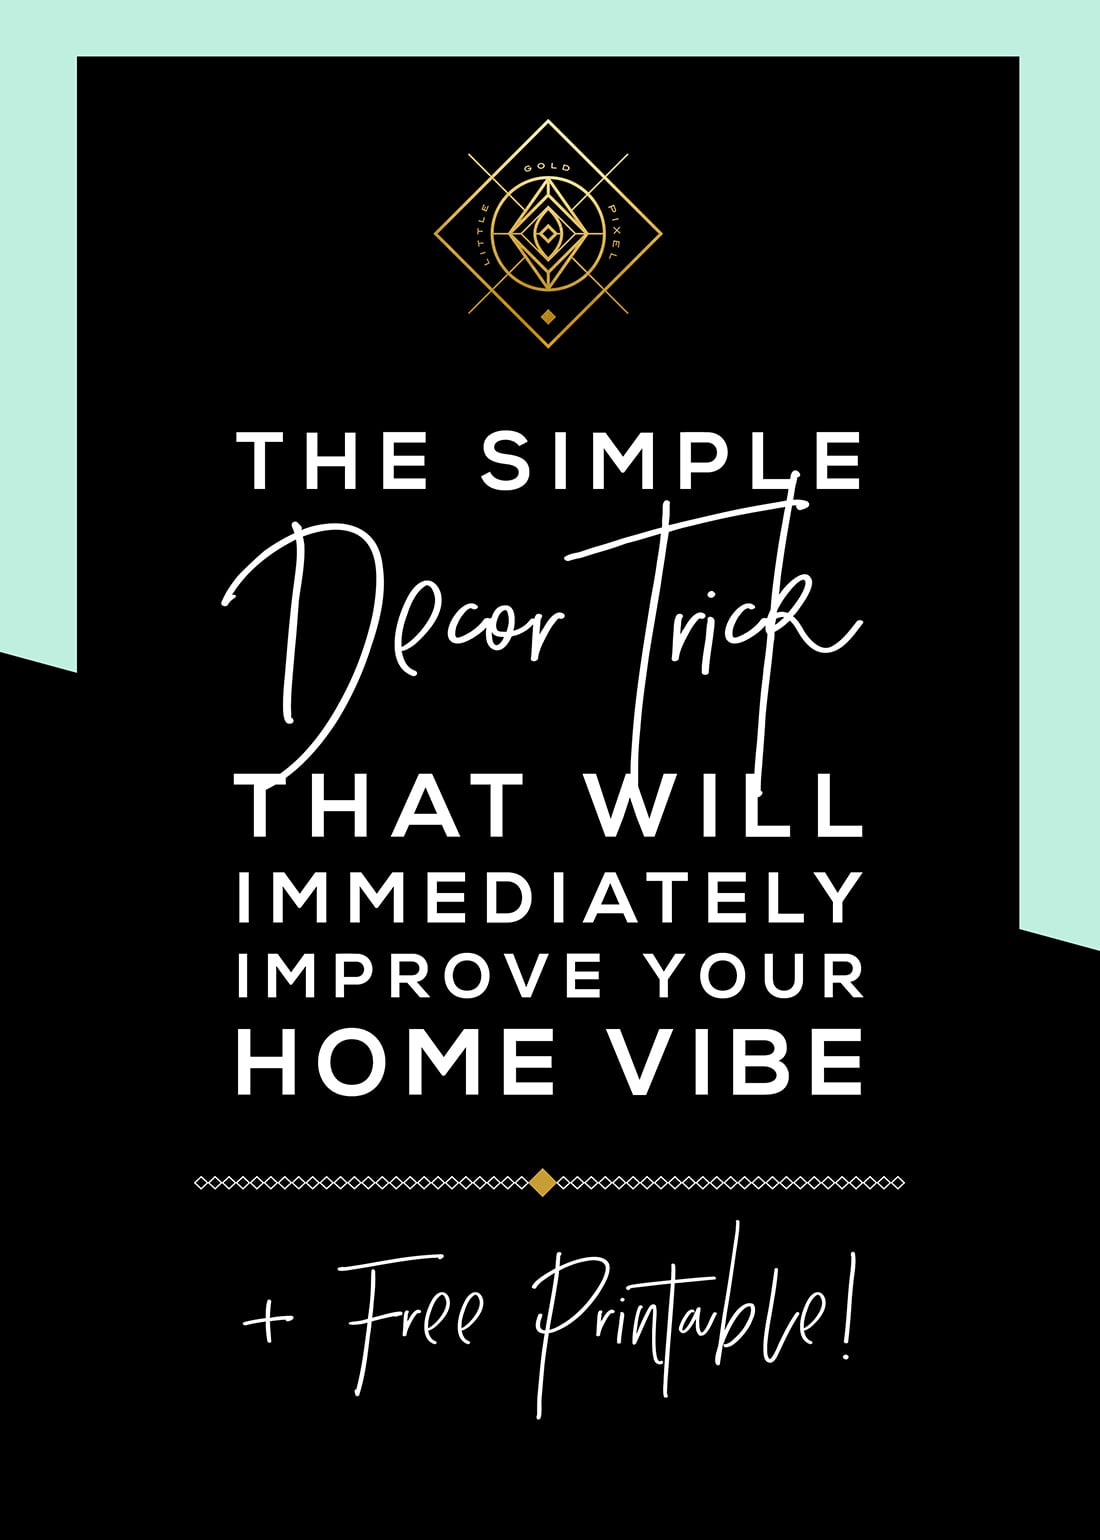 This Simple Decor Trick Will Immediately Improve Your Home Vibe • Little Gold Pixel